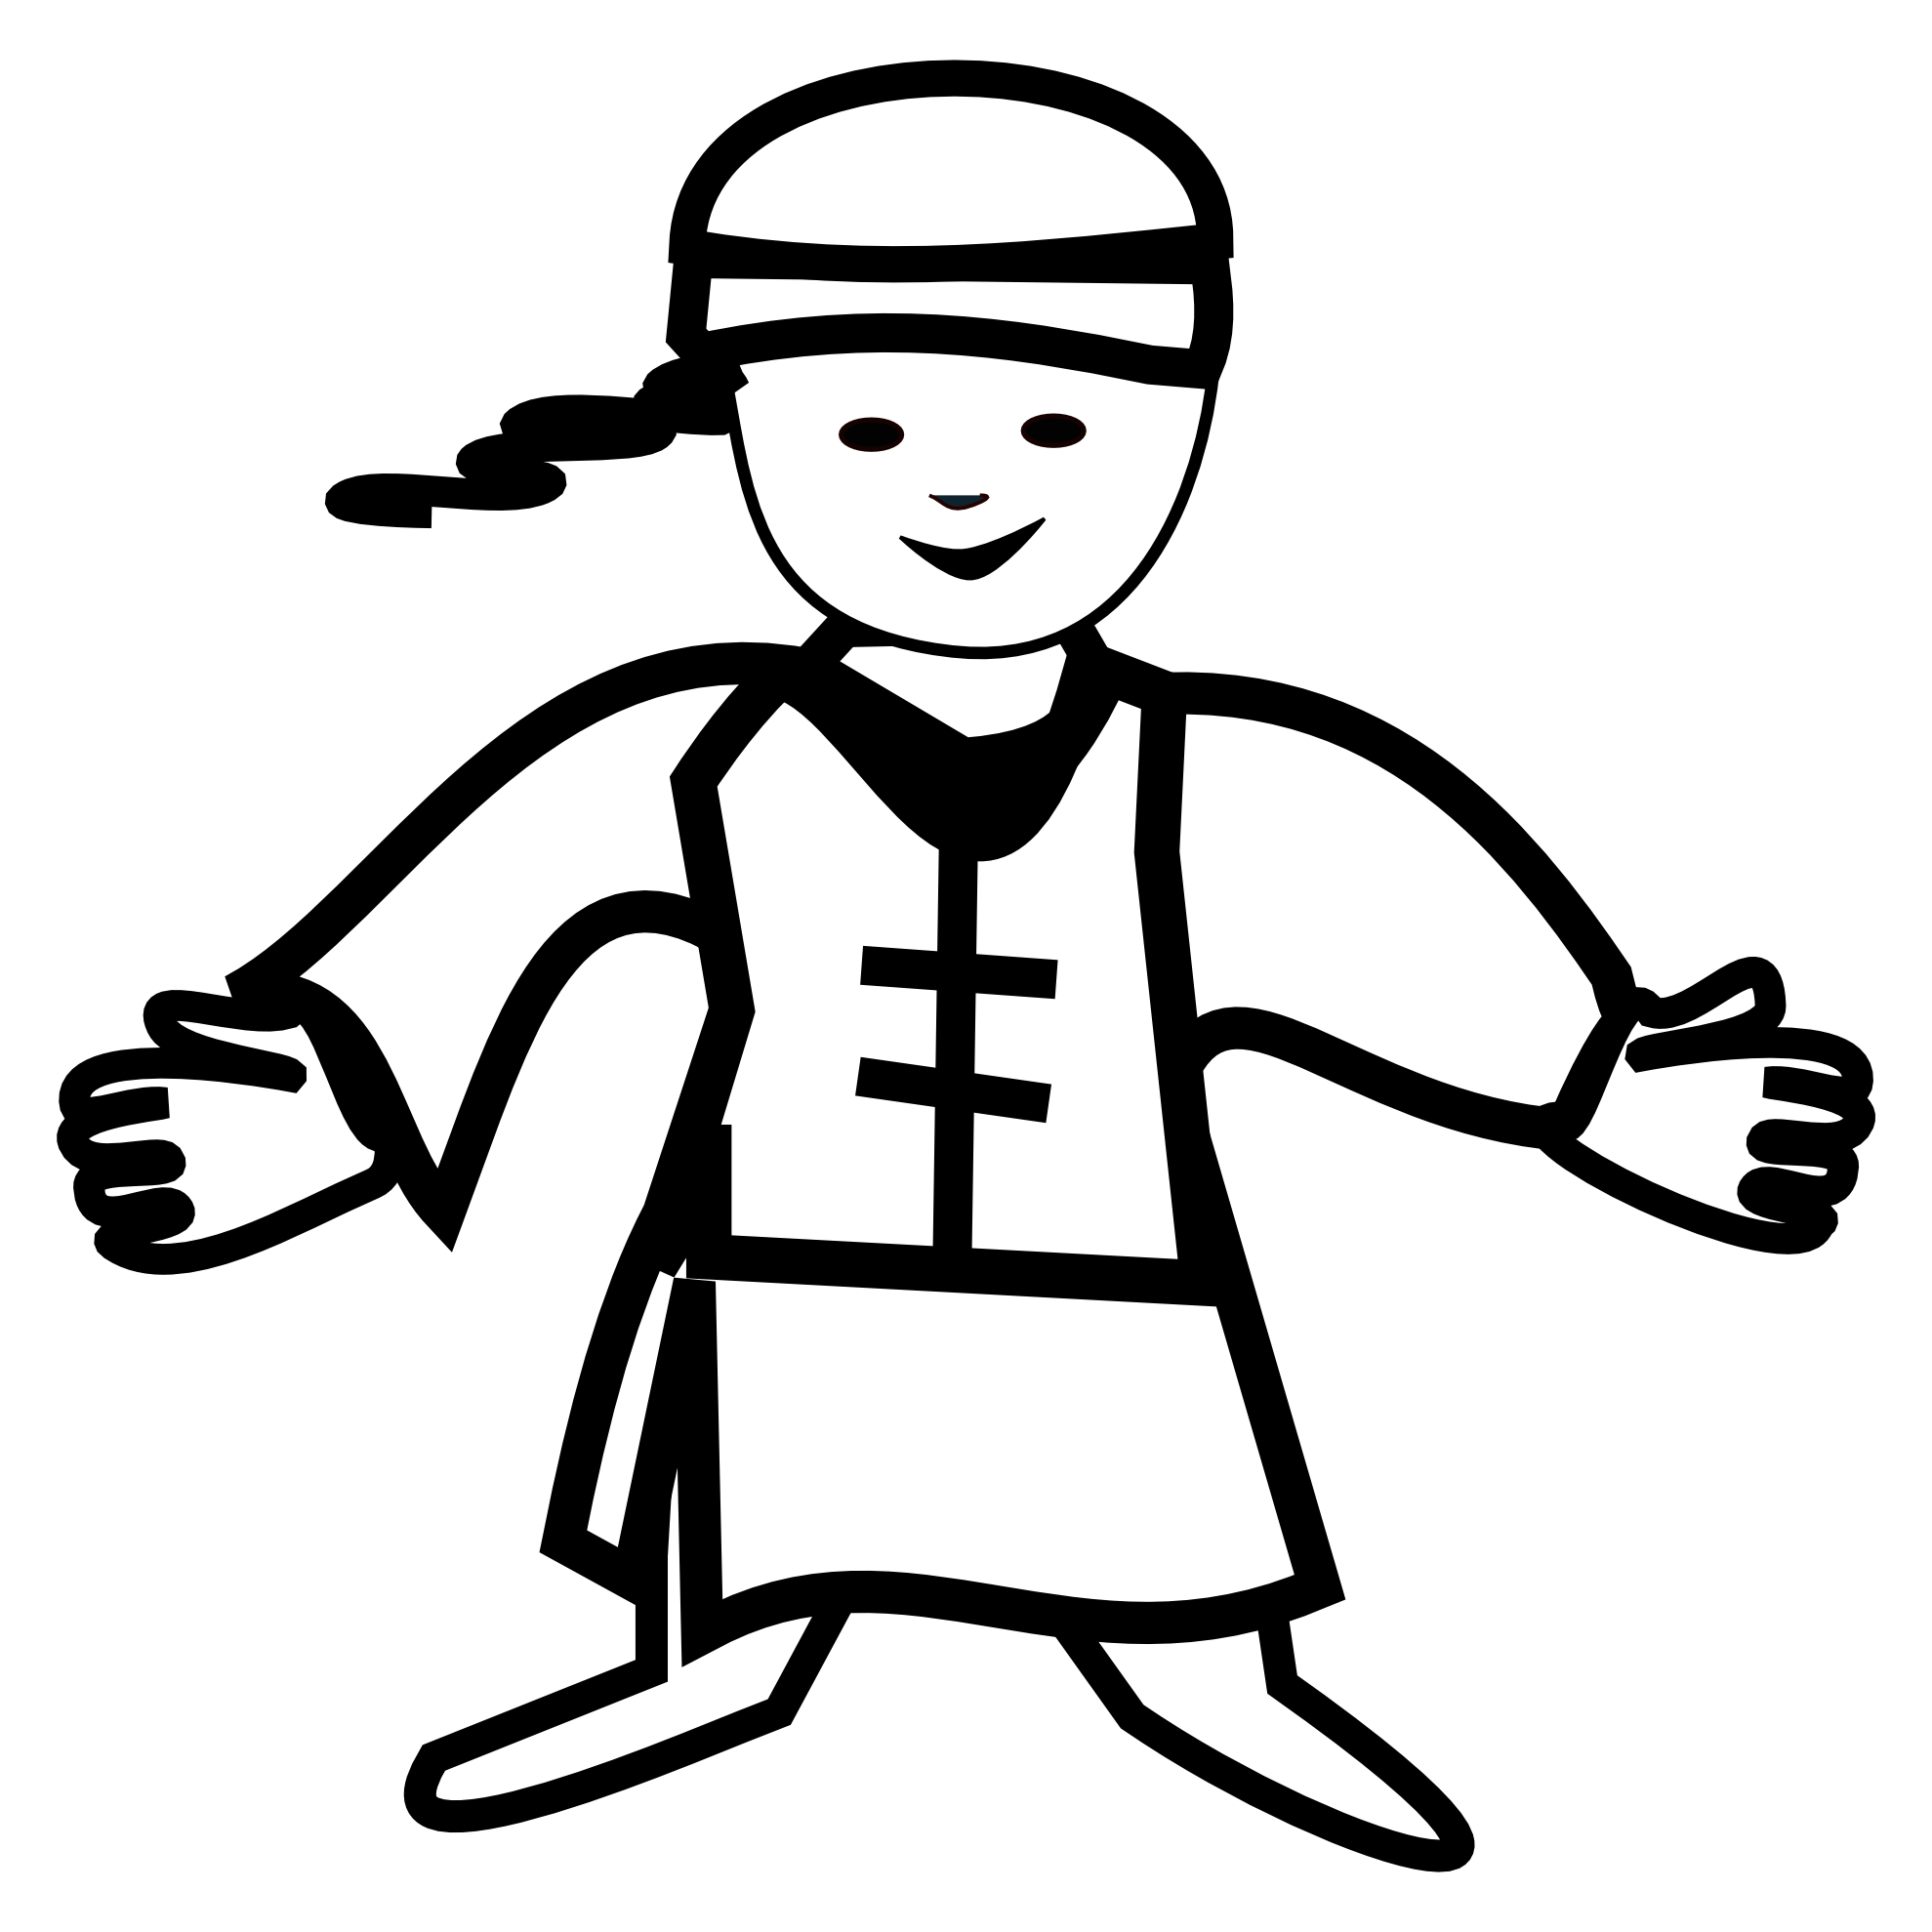 Ancient chinese army clipart clipart images gallery for free.